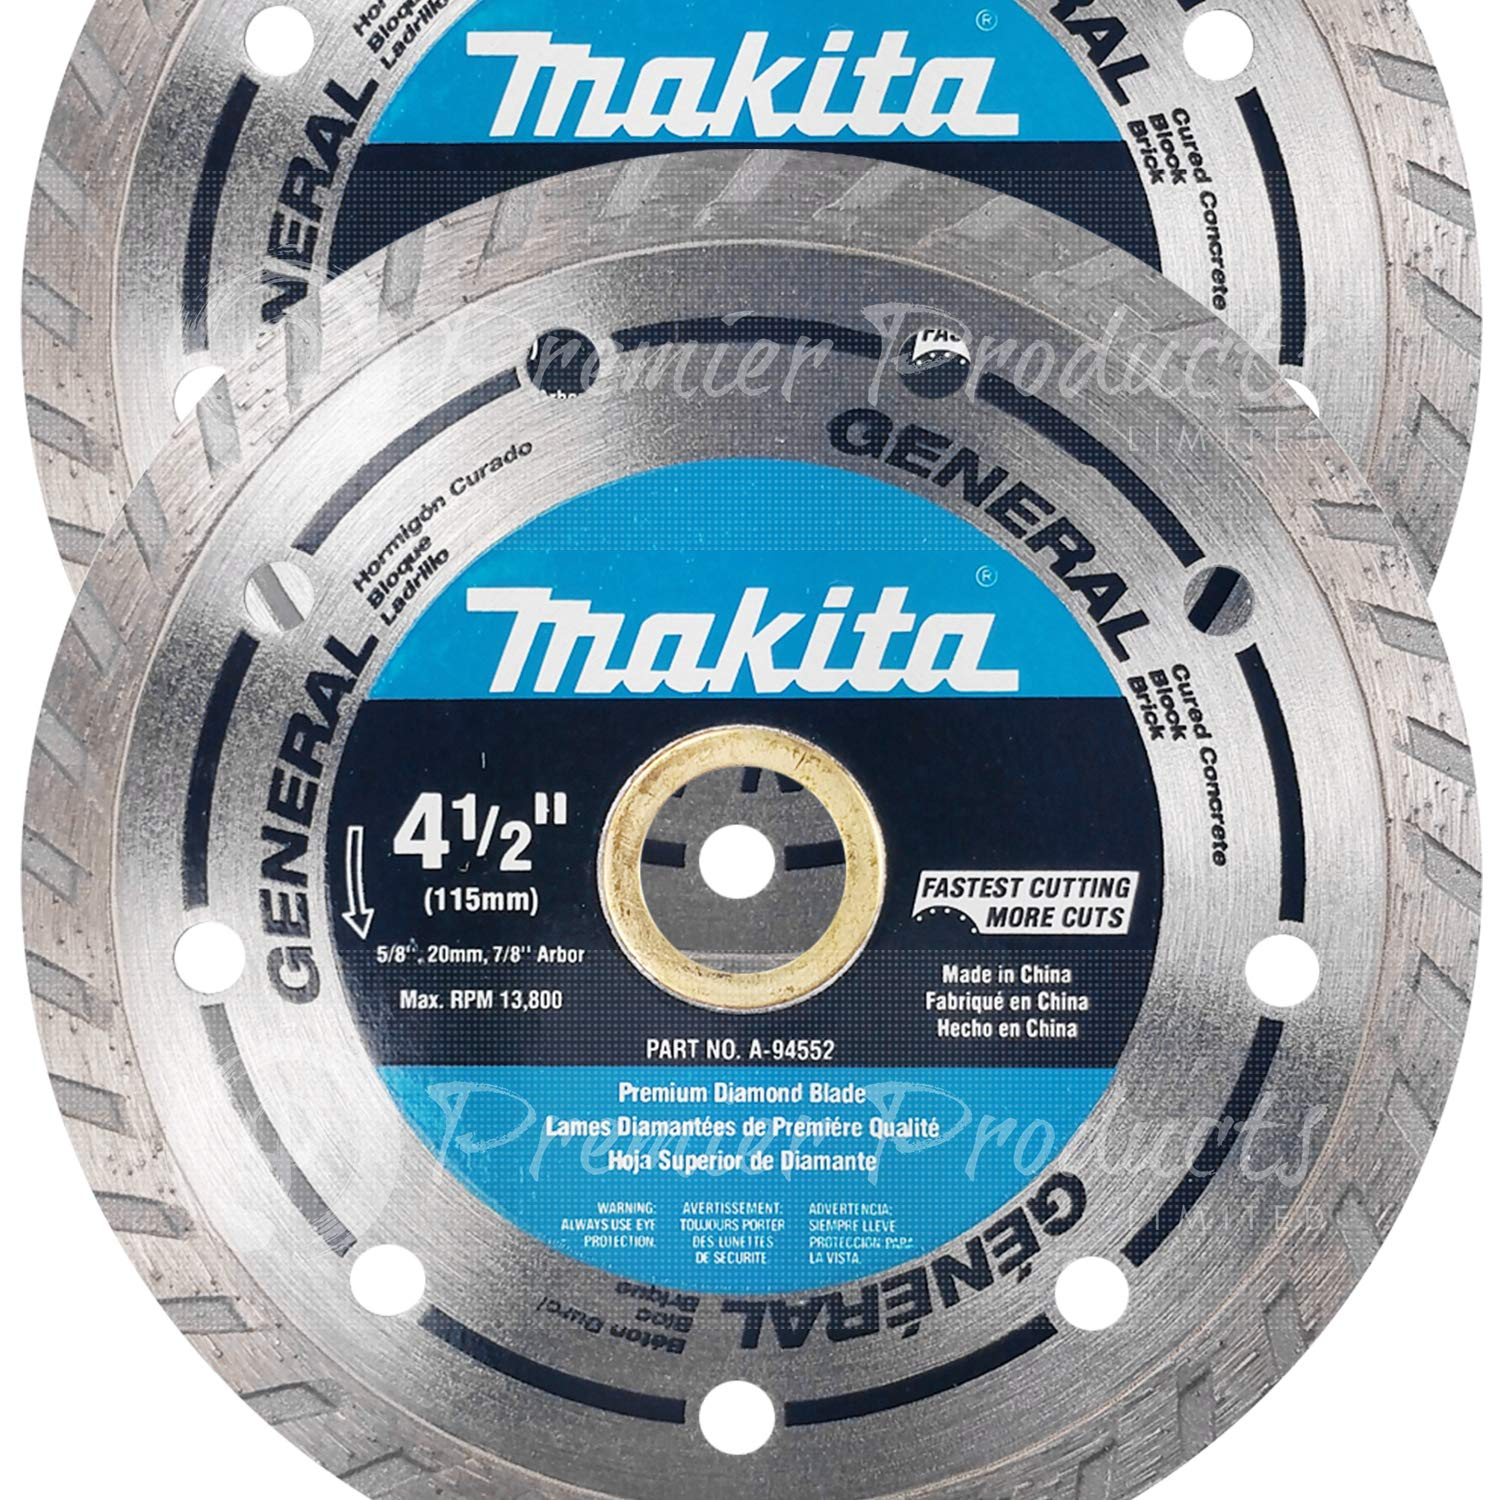 "Makita 2 Pack - 4.5"" Turbo Diamond Blades For 4.5"" Grinders - Ultra-Fast Cutting For Concrete, Masonry & Brick - 4-1/2"" x 7/8"""